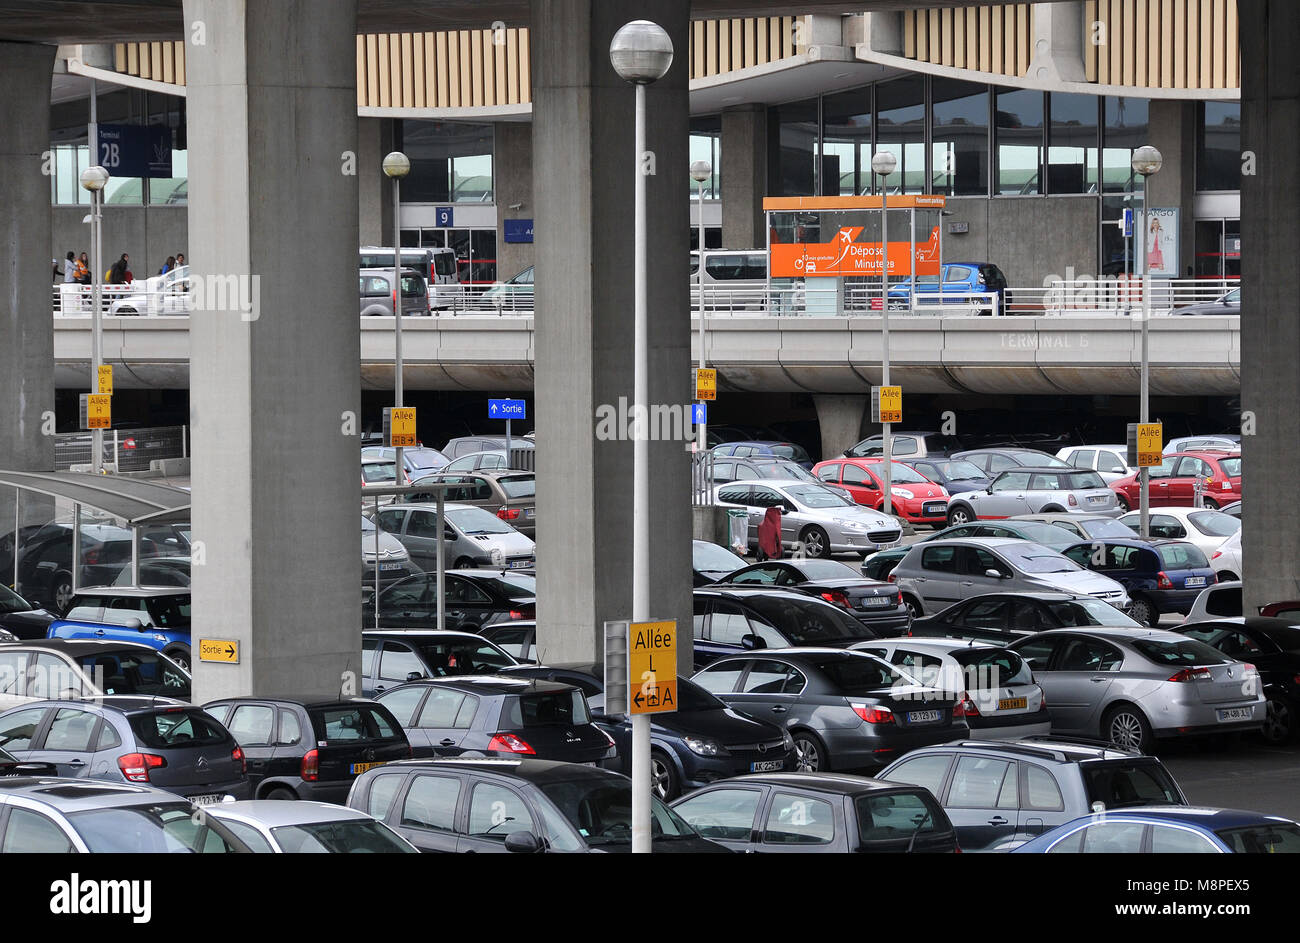 Parking Roissy Cdg Cars Parking Roissy Charles De Gaulle Airport Paris France